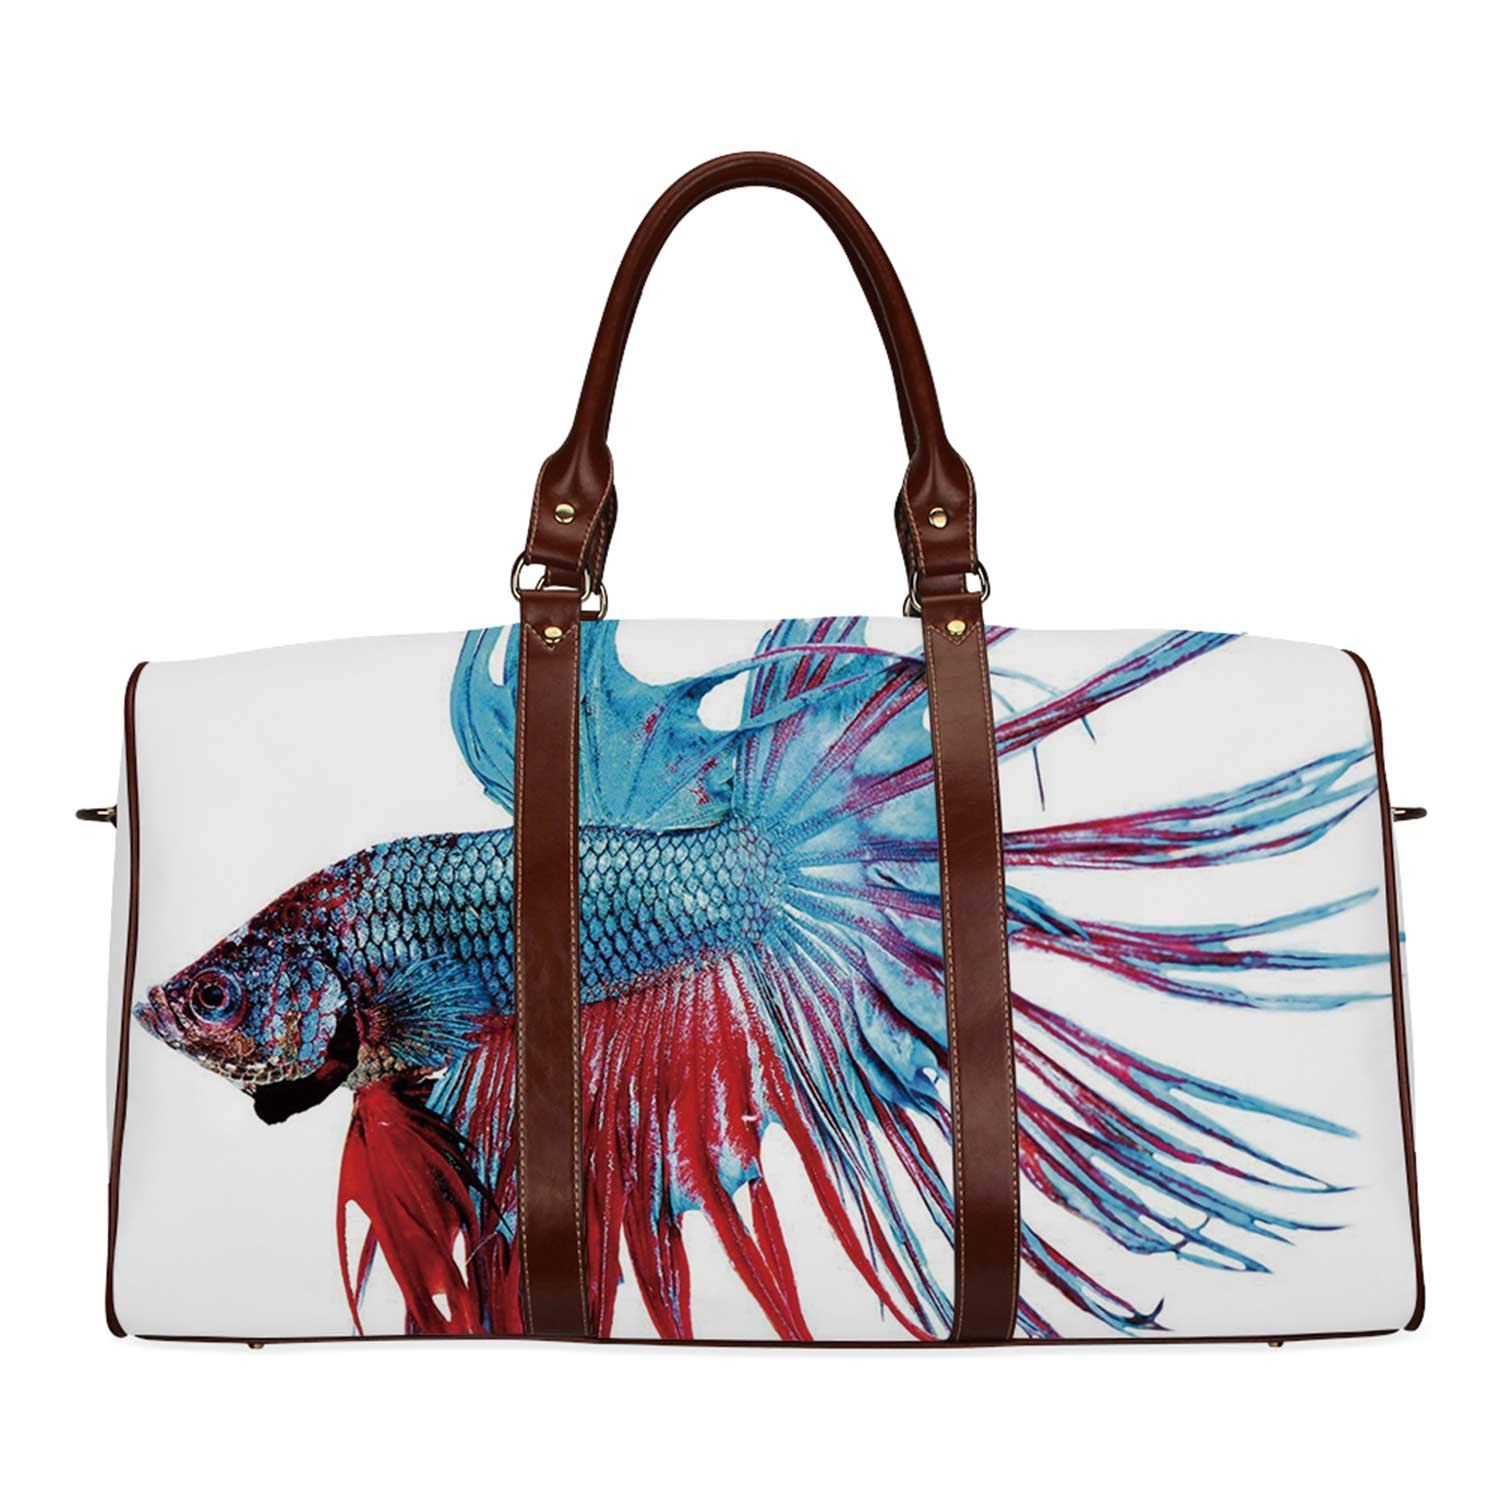 Aquarium Waterproof Travel Bag,Fantastic Betta Fish Close Up Dragon Fish with Fringy Tail Tropic Aquatic Life Decorative for Travel,18.62''L x 8.5''W x 9.65''H by YOLIYANA